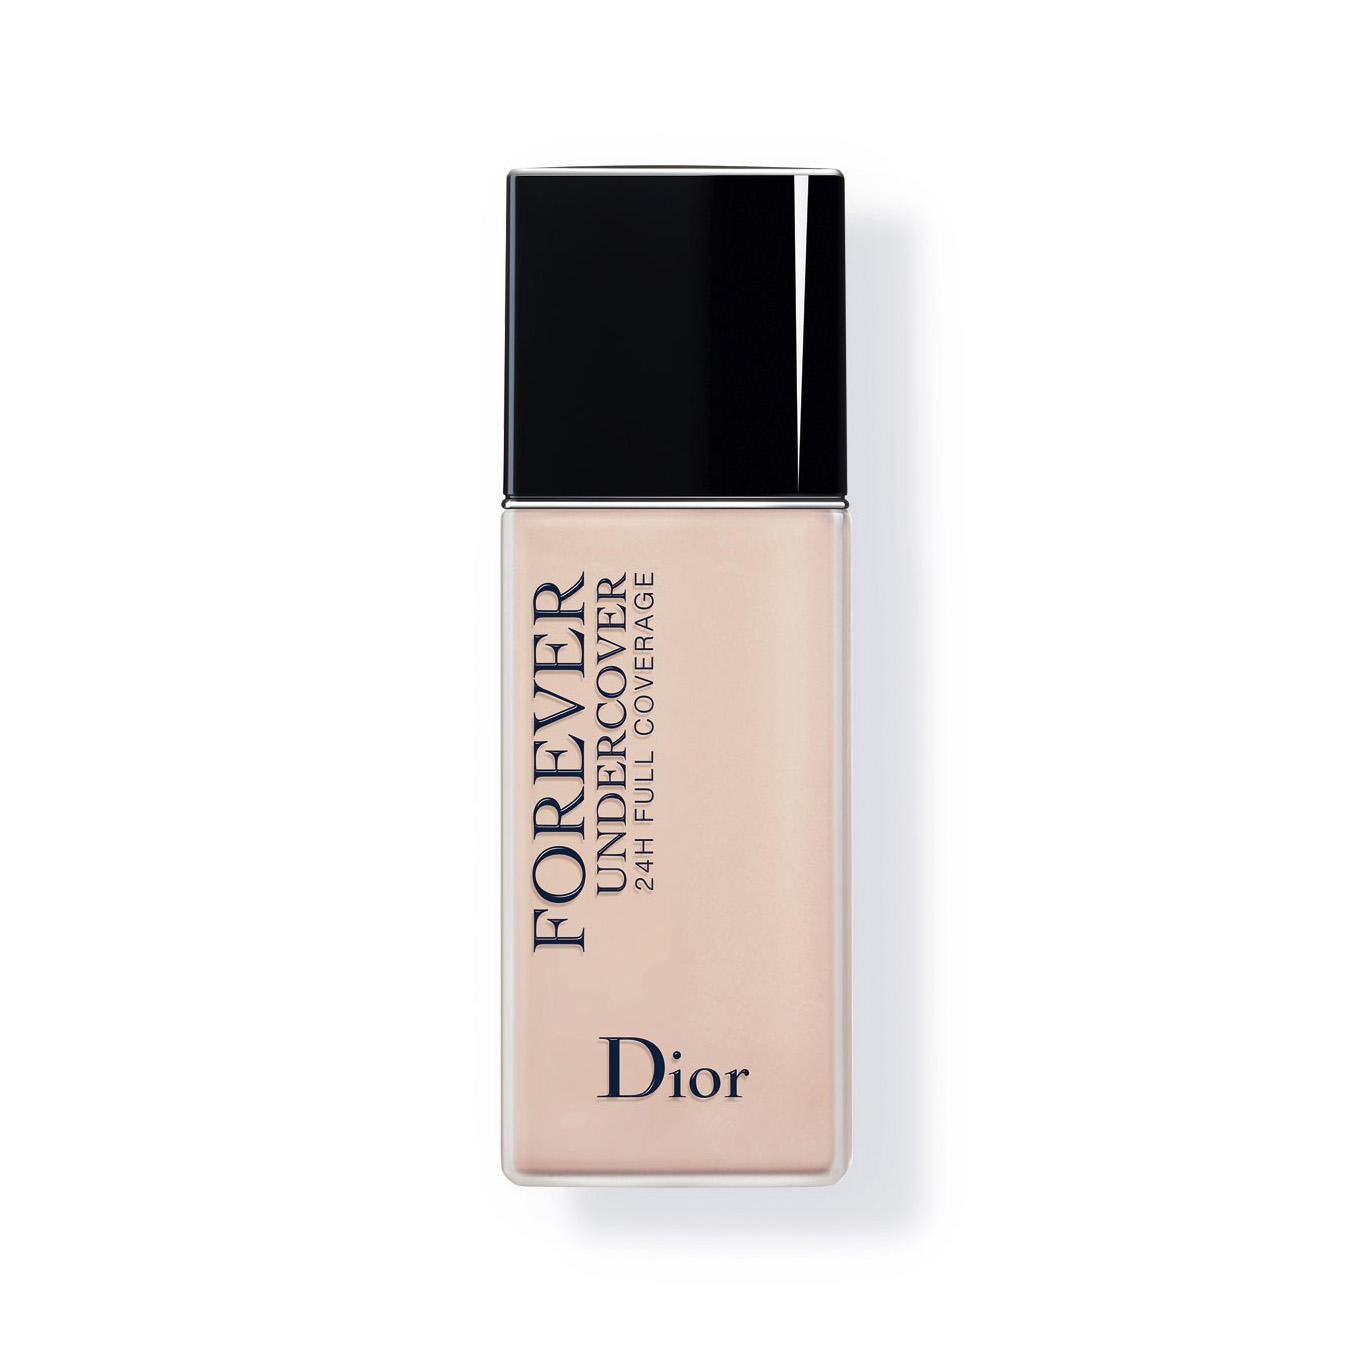 Dior Diorskin Forever Undercover Foundation Fair Almond 014